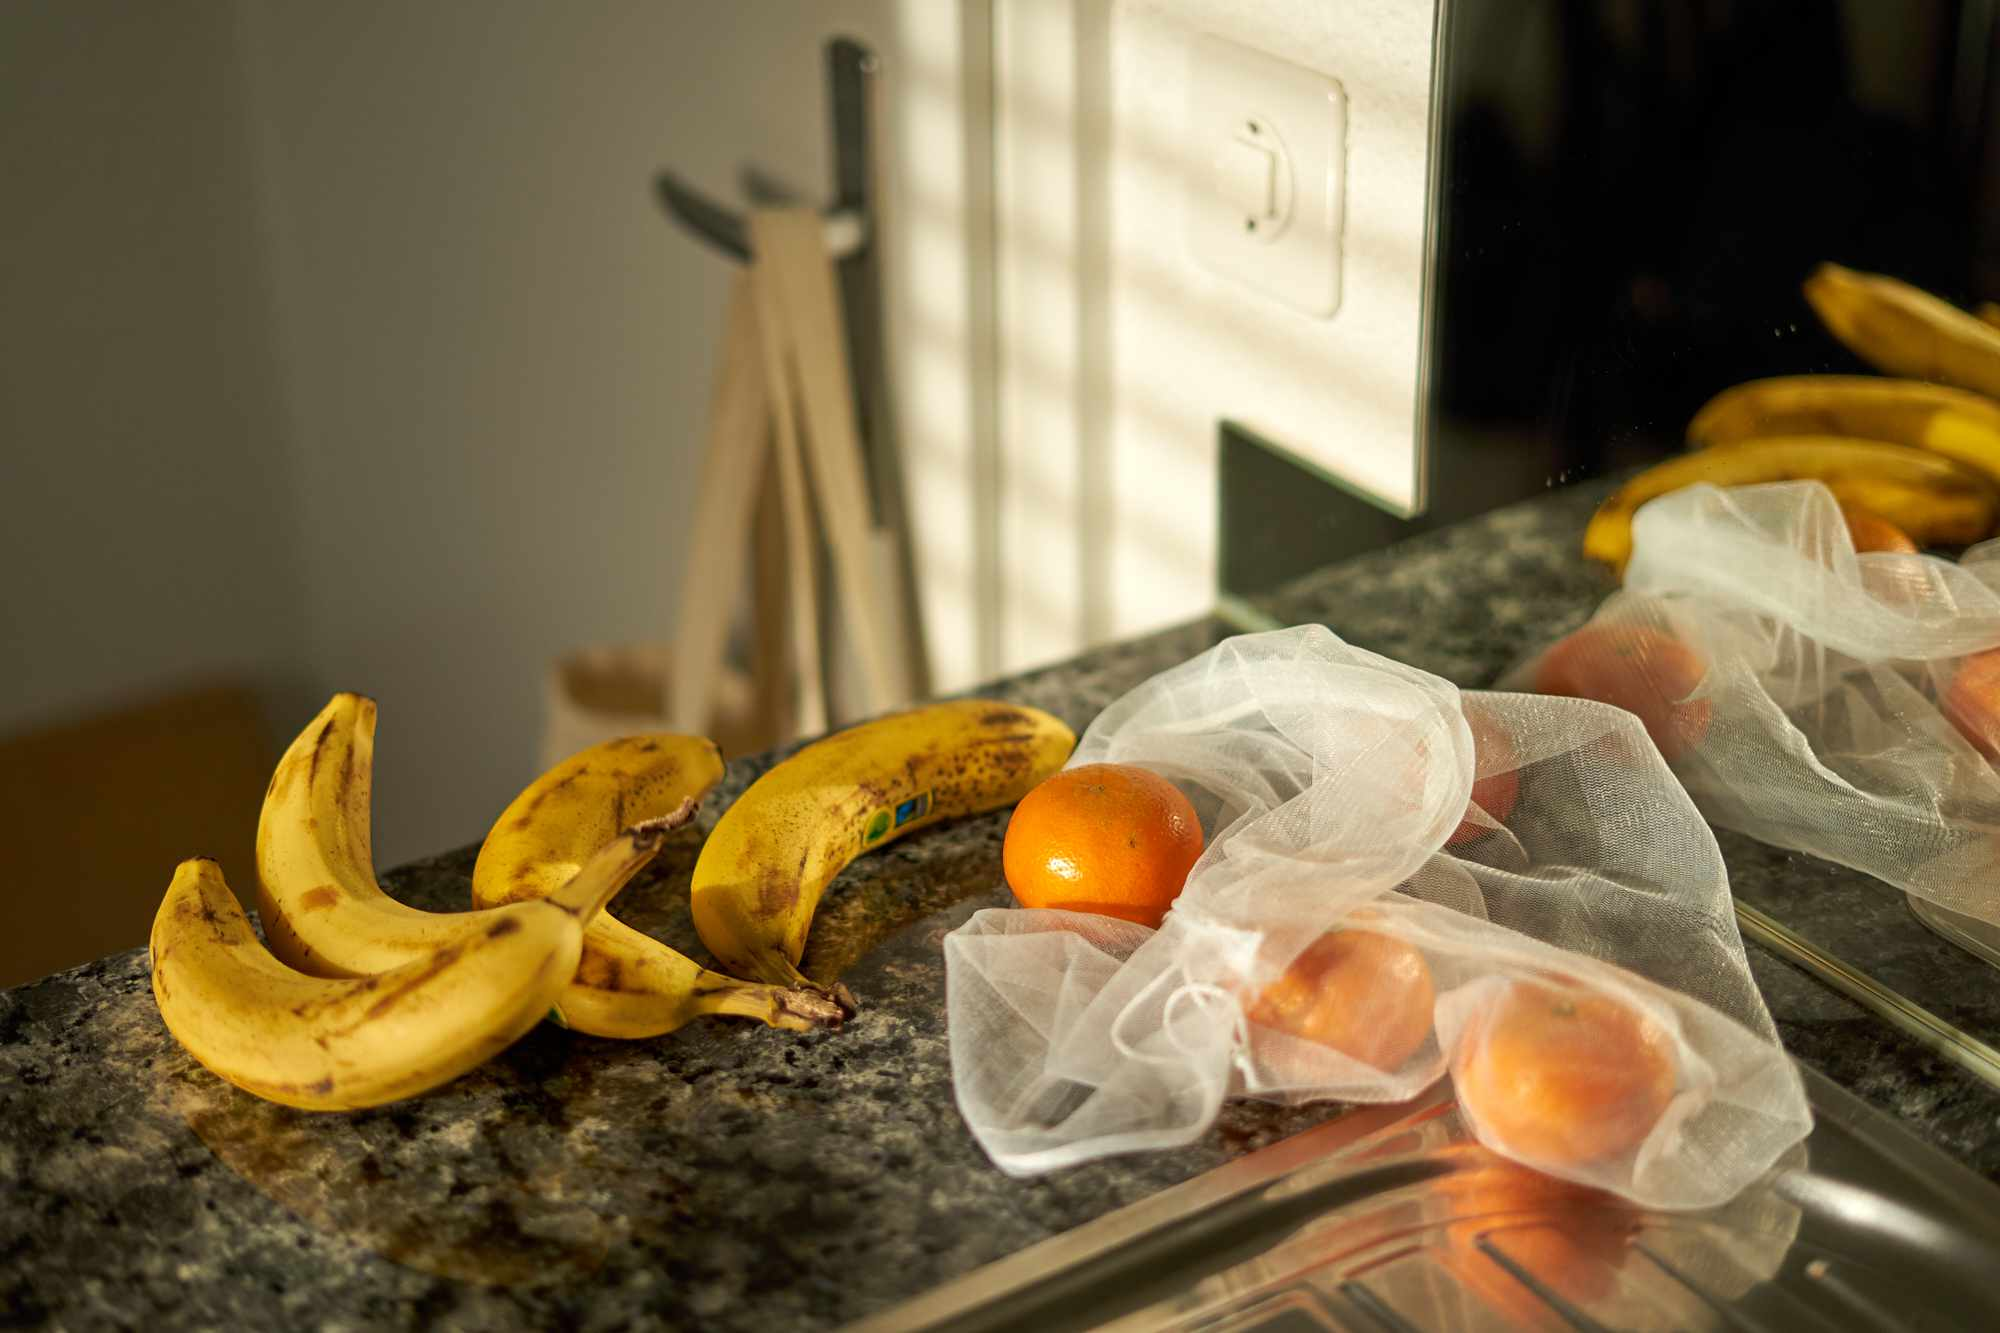 reusable mesh shopping bag with oranges and bananas on kitchen counter